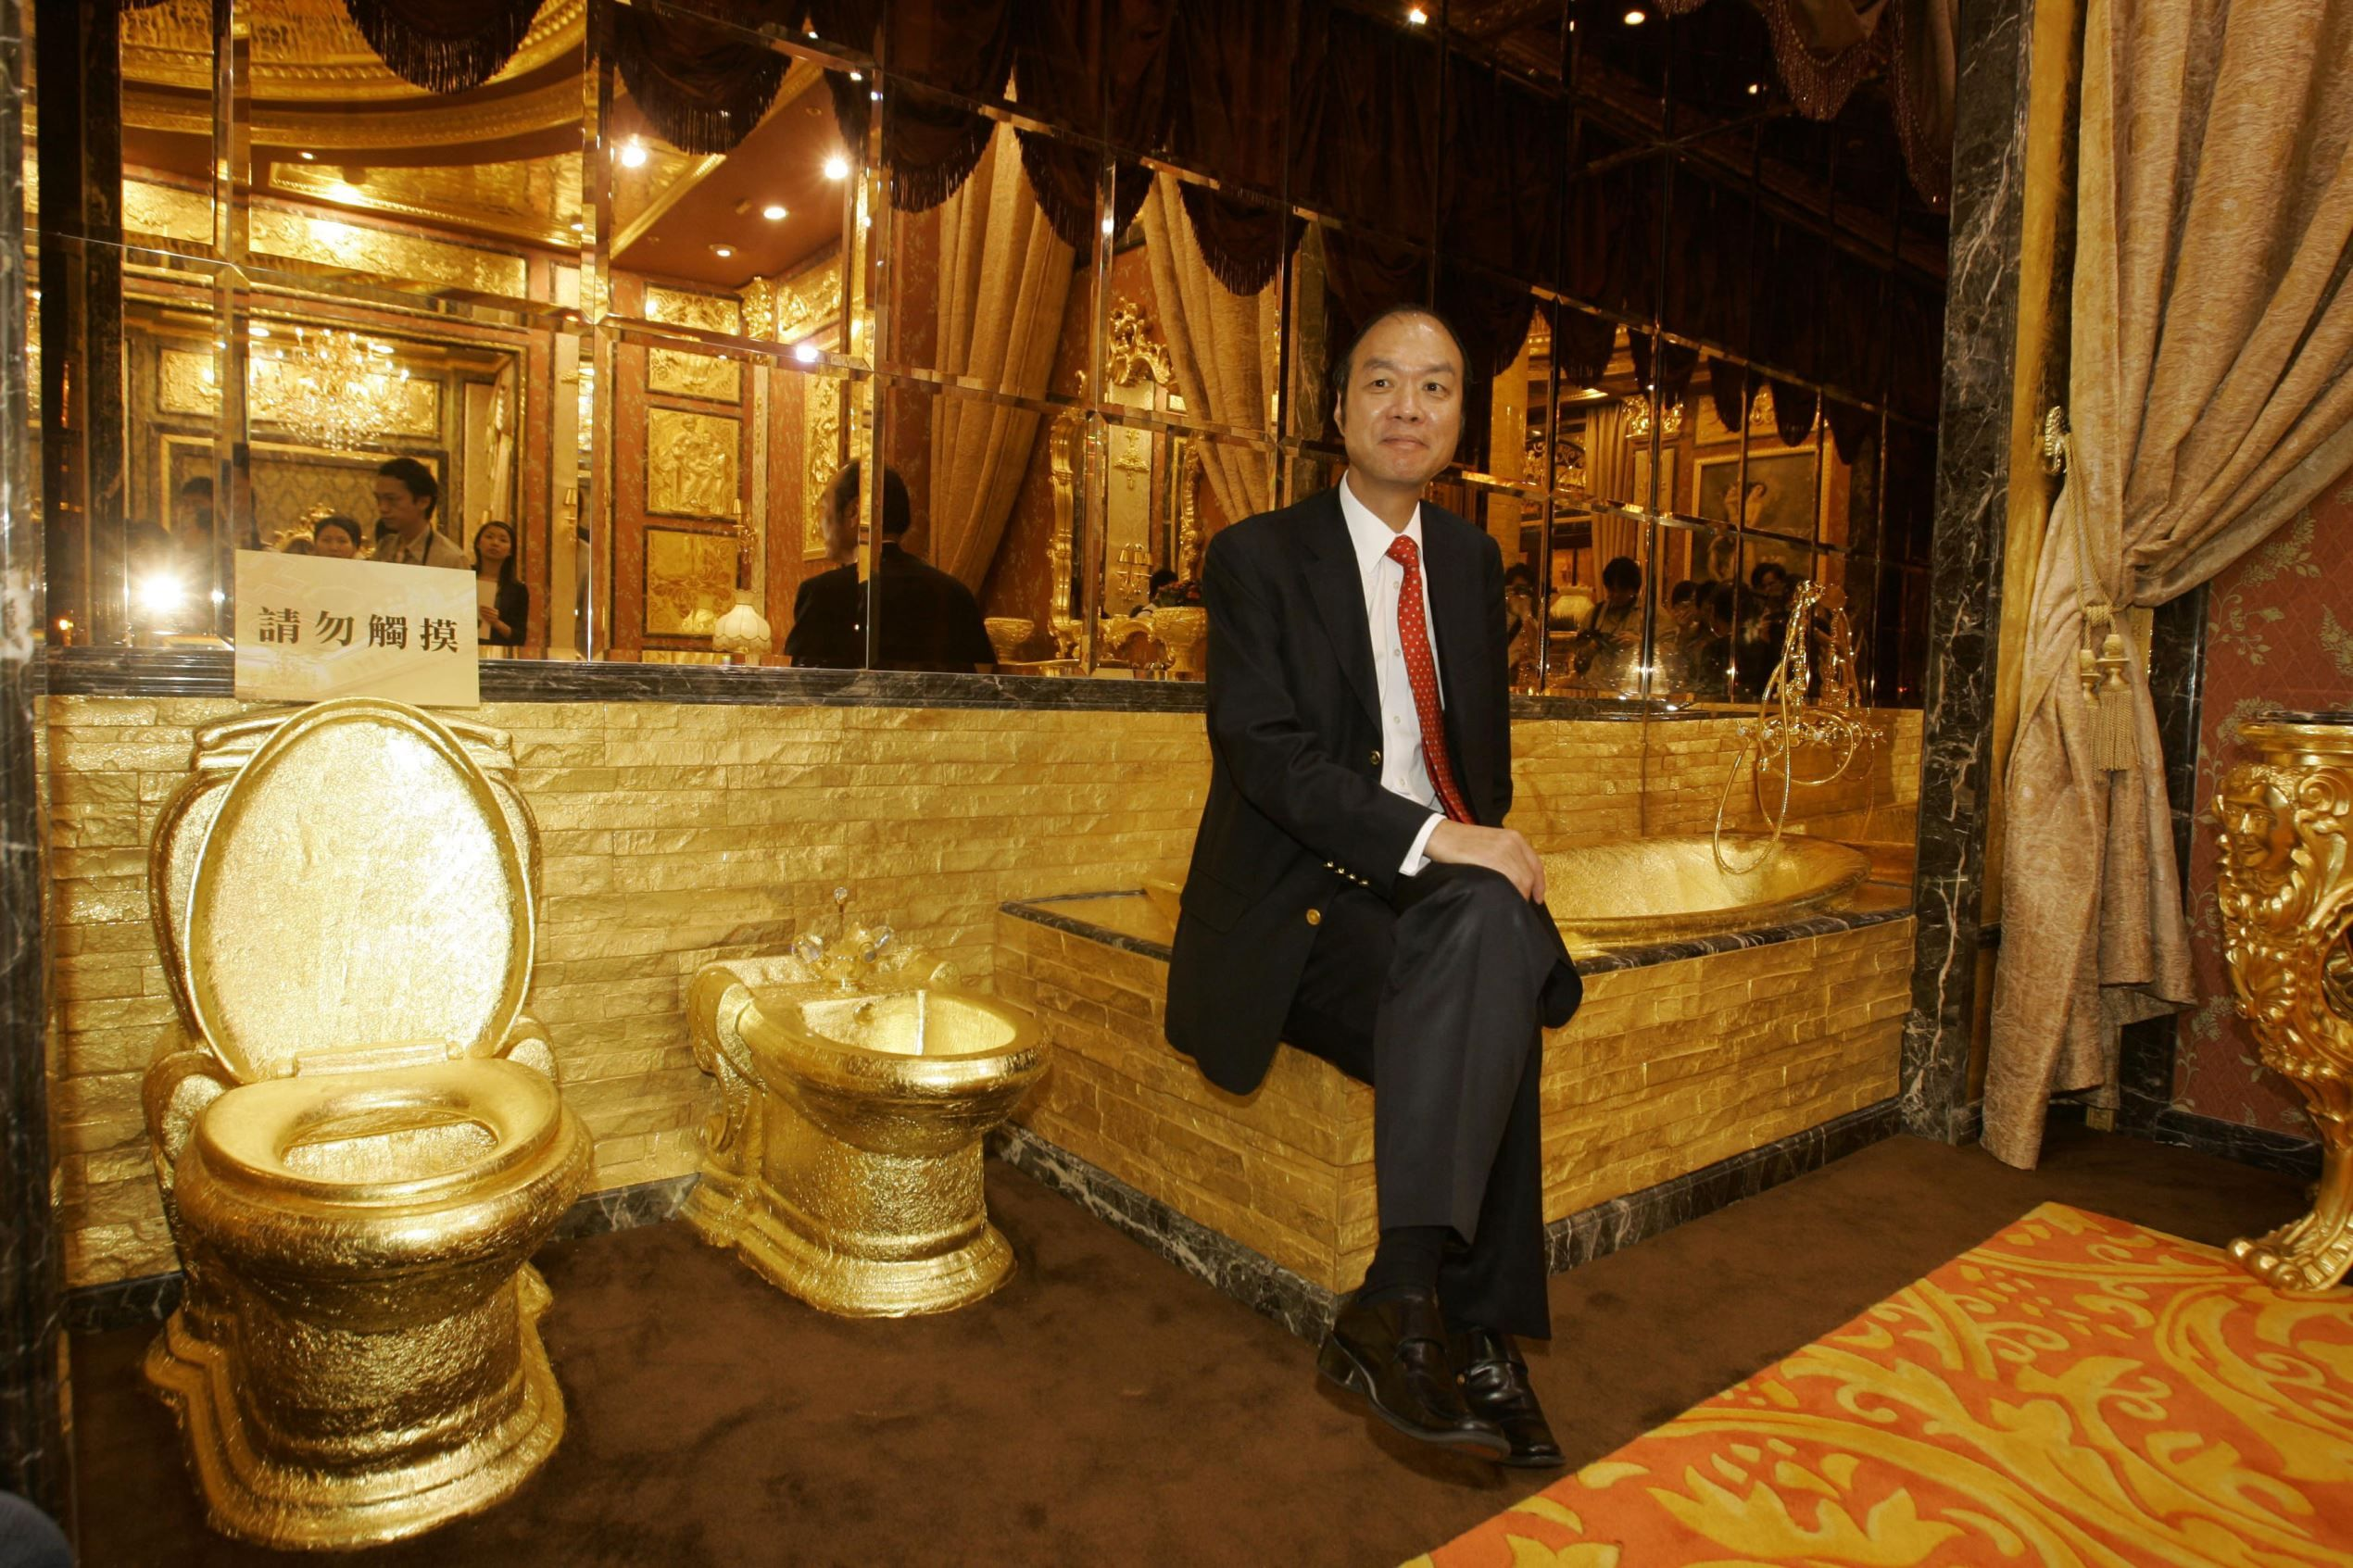 Most expensive bathrooms in the world - Bathrooms Most Expensive Bathrooms Most Expensive In The World Created By Lam Sai Wing In